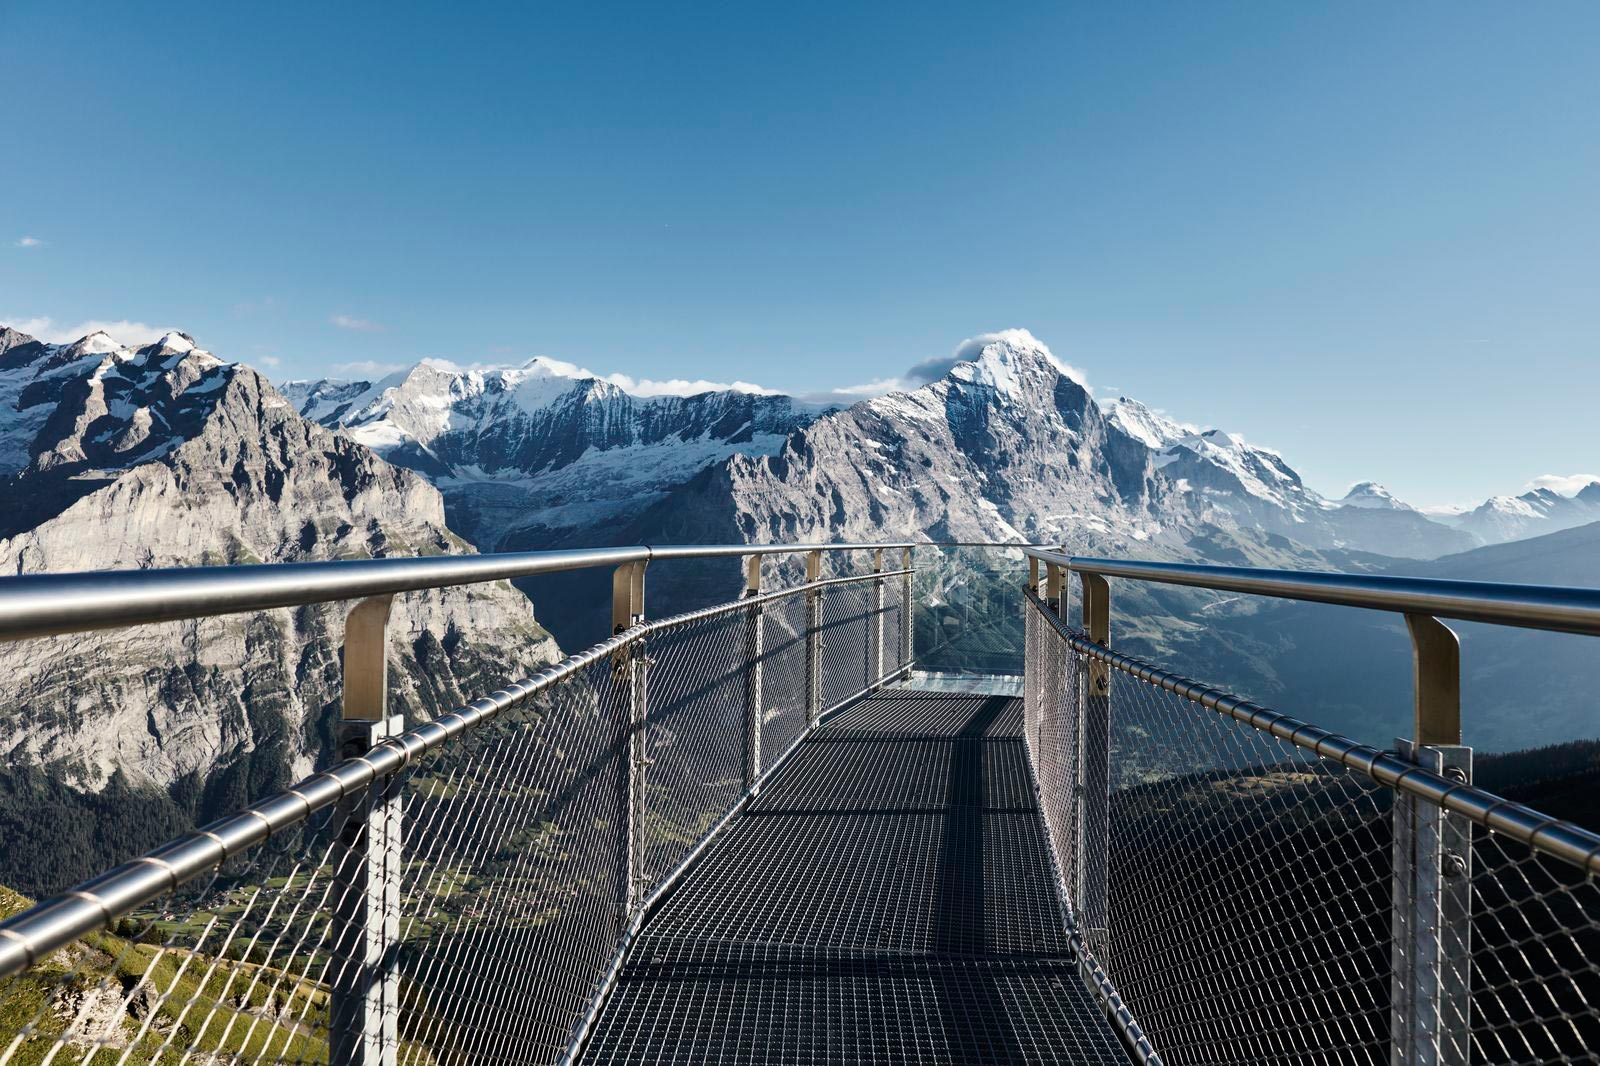 View of the mountains and the Jakob Rope Systems Webnet bridge in Grindelwald